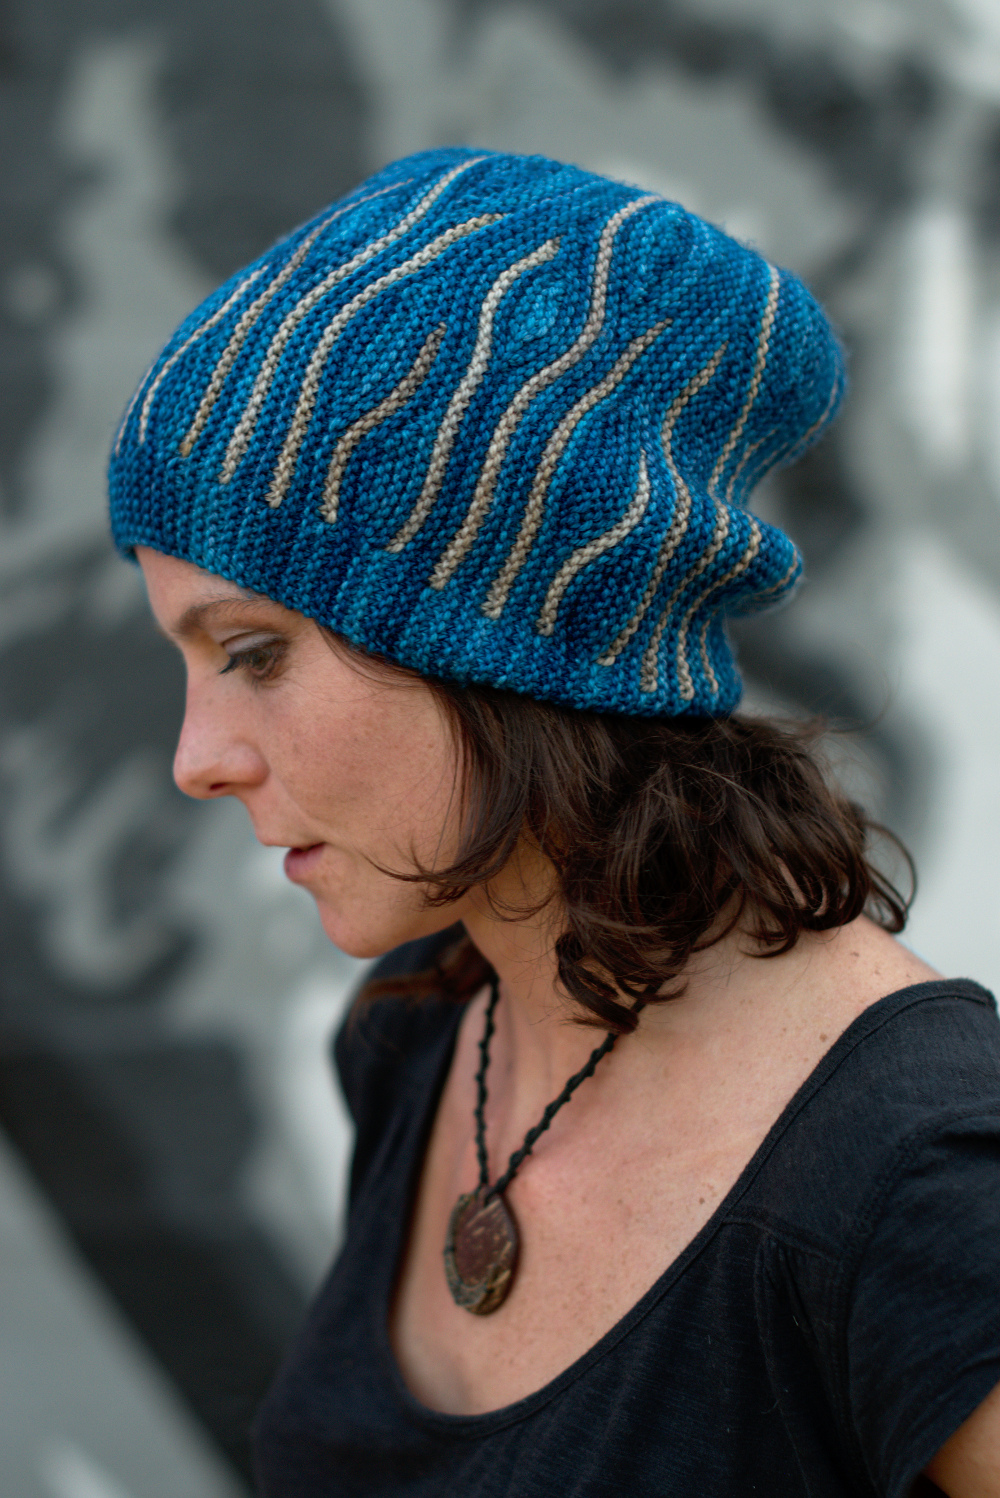 Katara sideways knit short row colourwork hand knitted Hat pattern